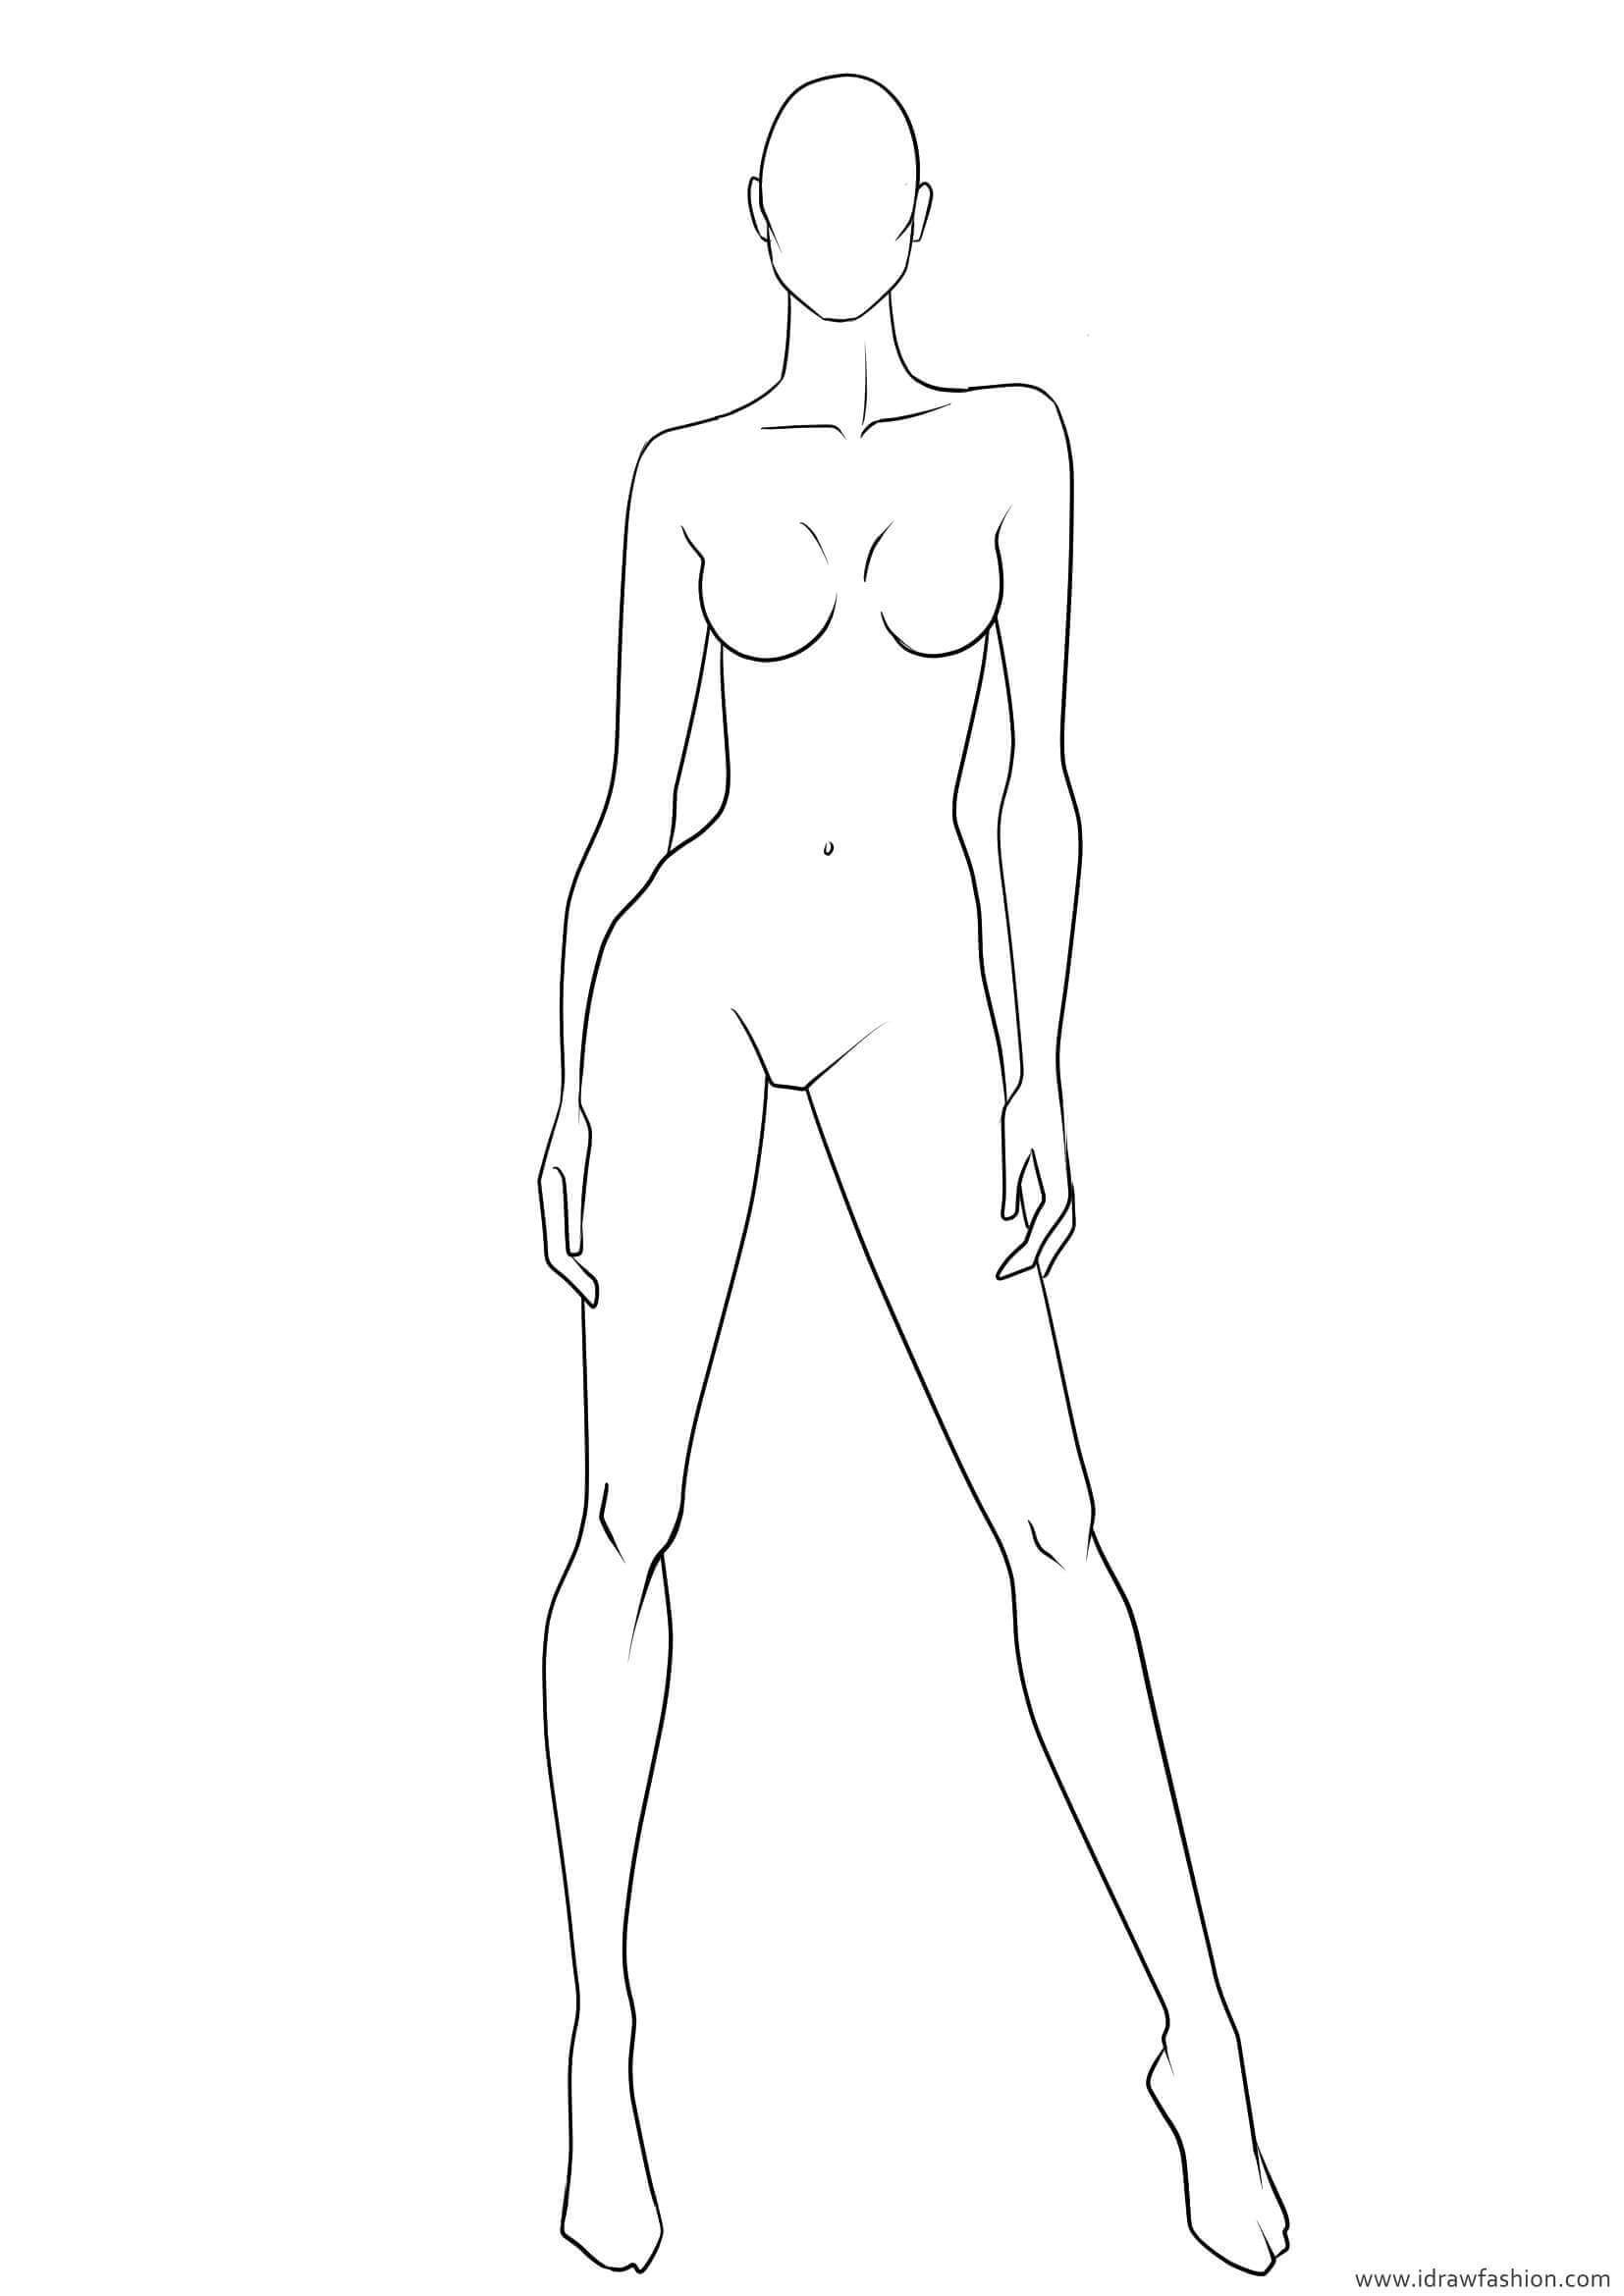 Blank Body Sketch At Paintingvalley   Explore Collection in Blank Model Sketch Template